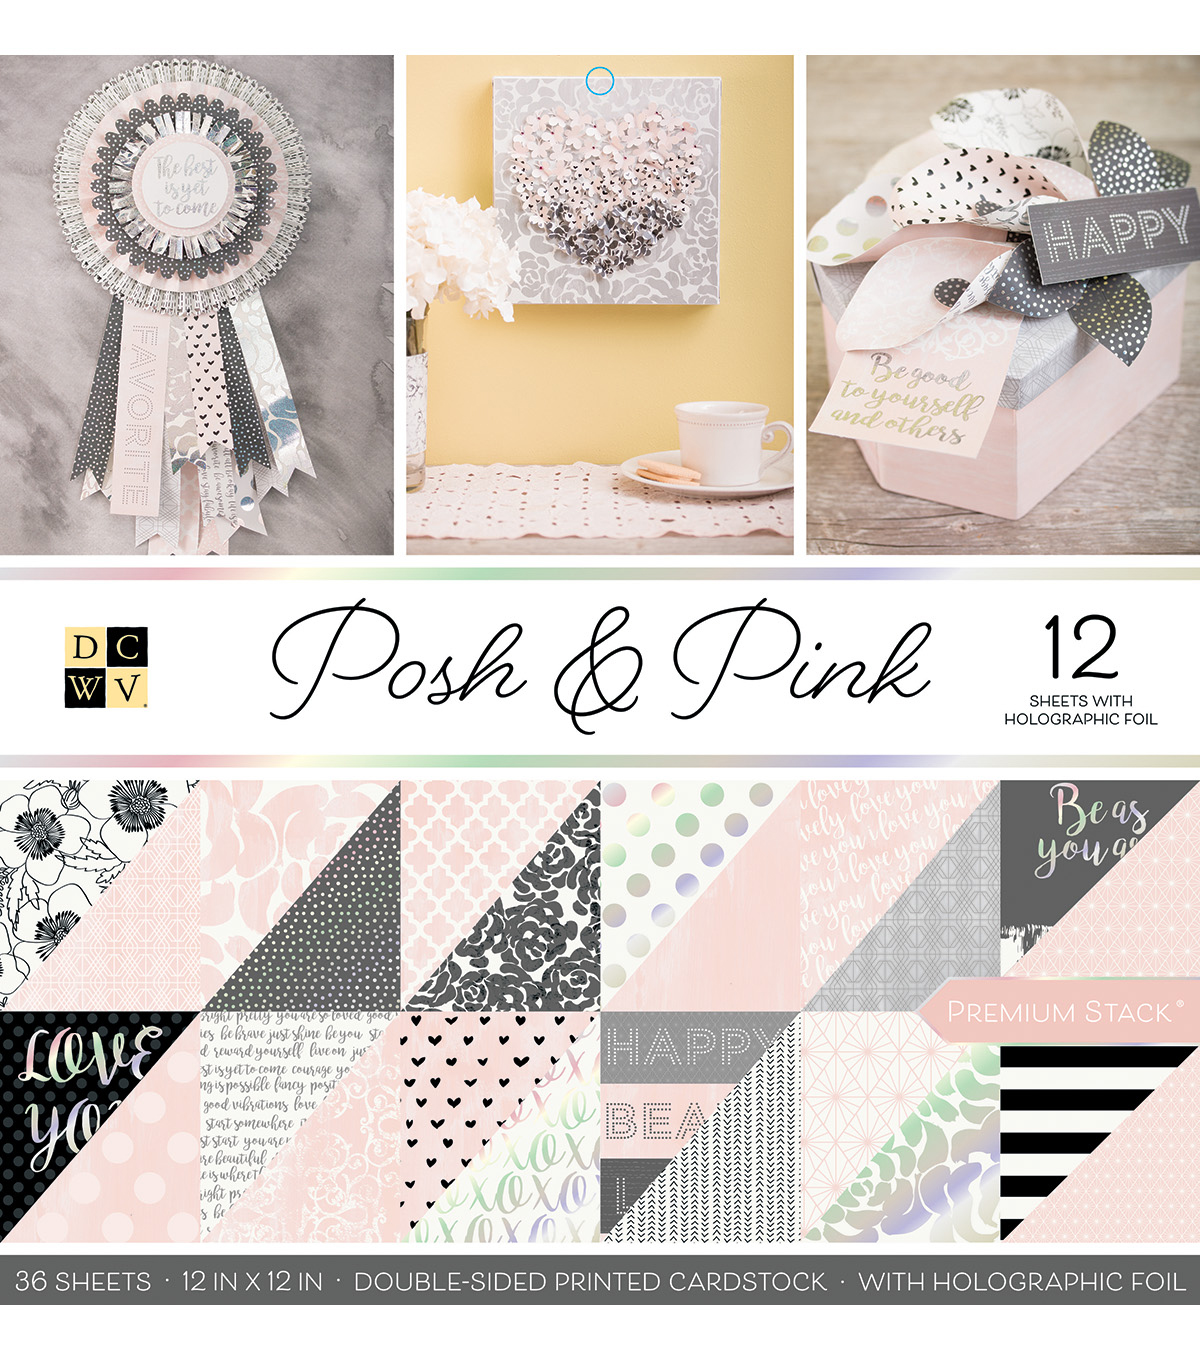 Image result for pink & posh dcwv